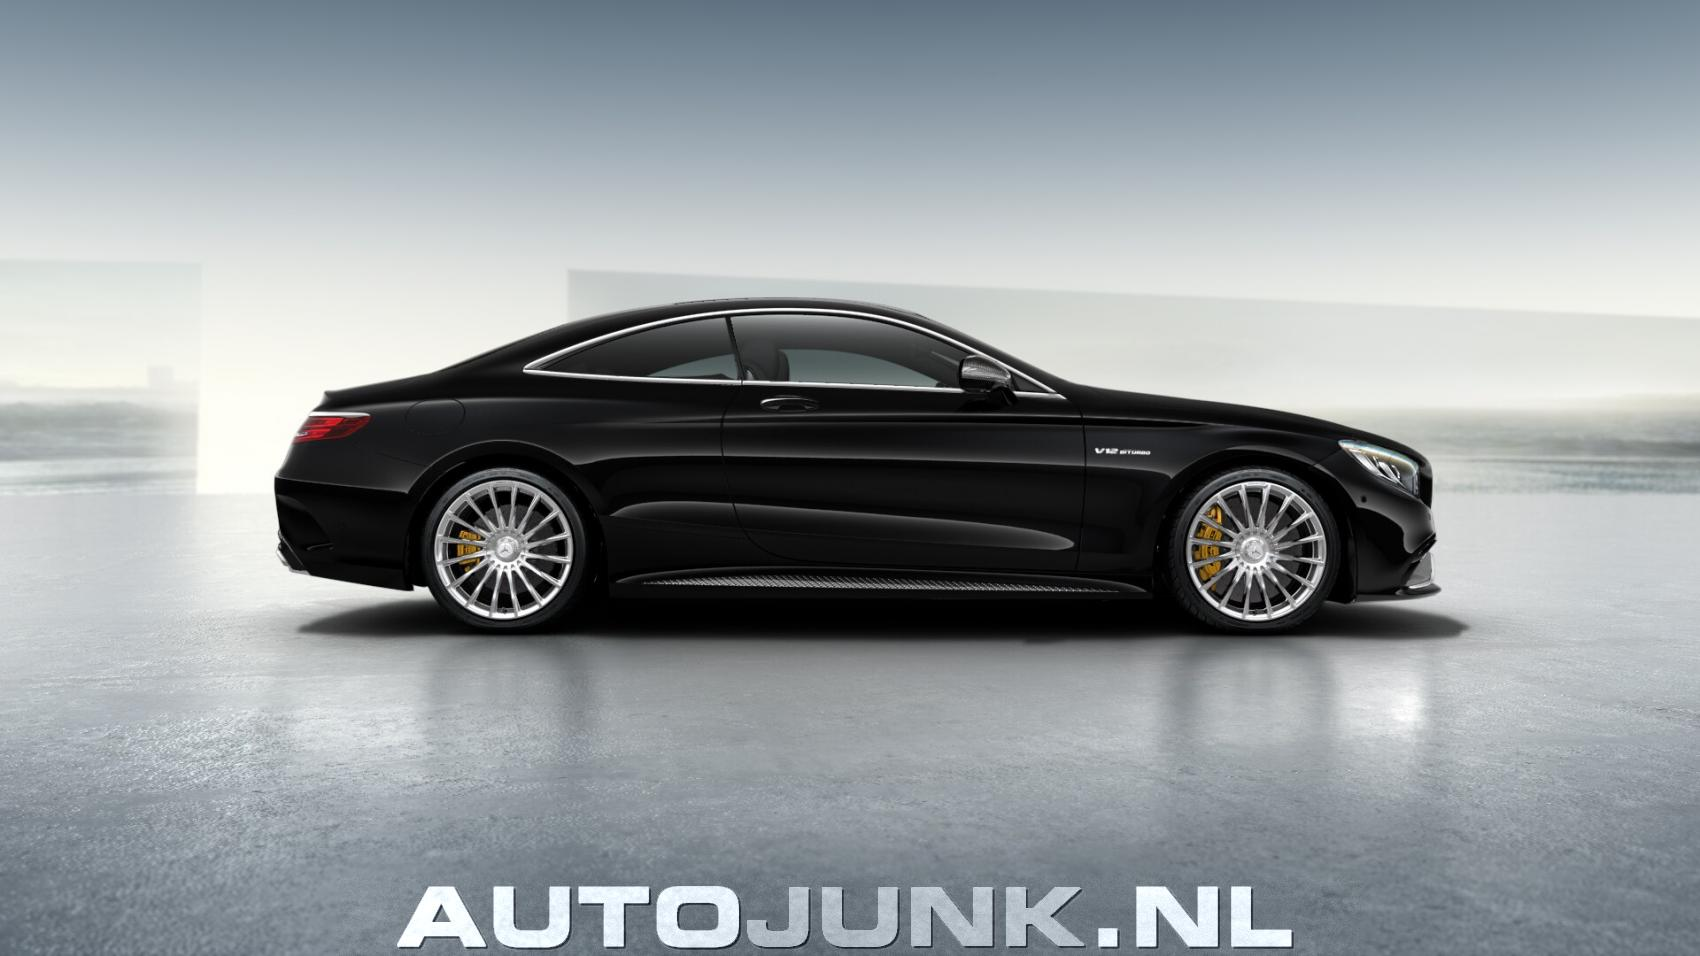 Mercedes benz s65 amg coupe foto 39 s 122603 for 2014 mercedes benz s65 amg coupe